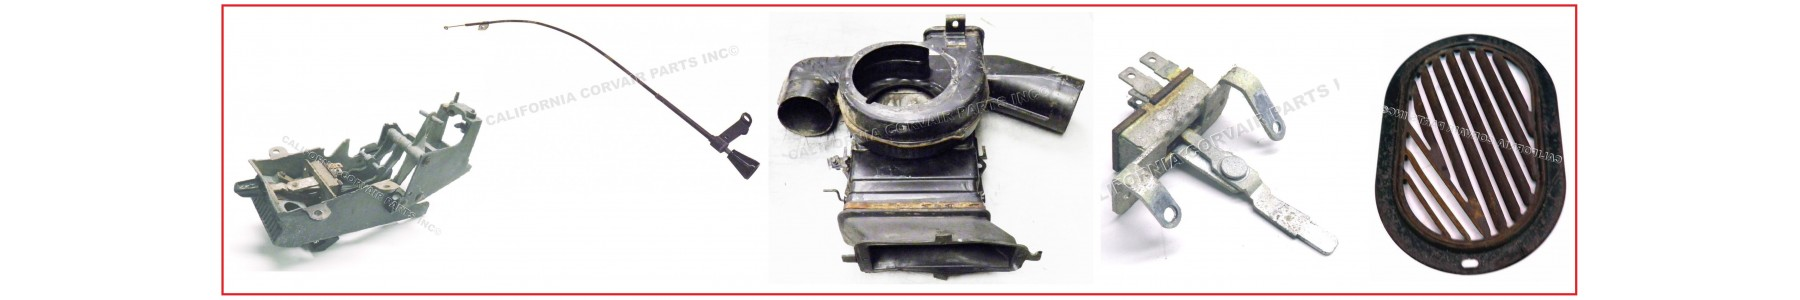 USED HEATER & VENT PARTS